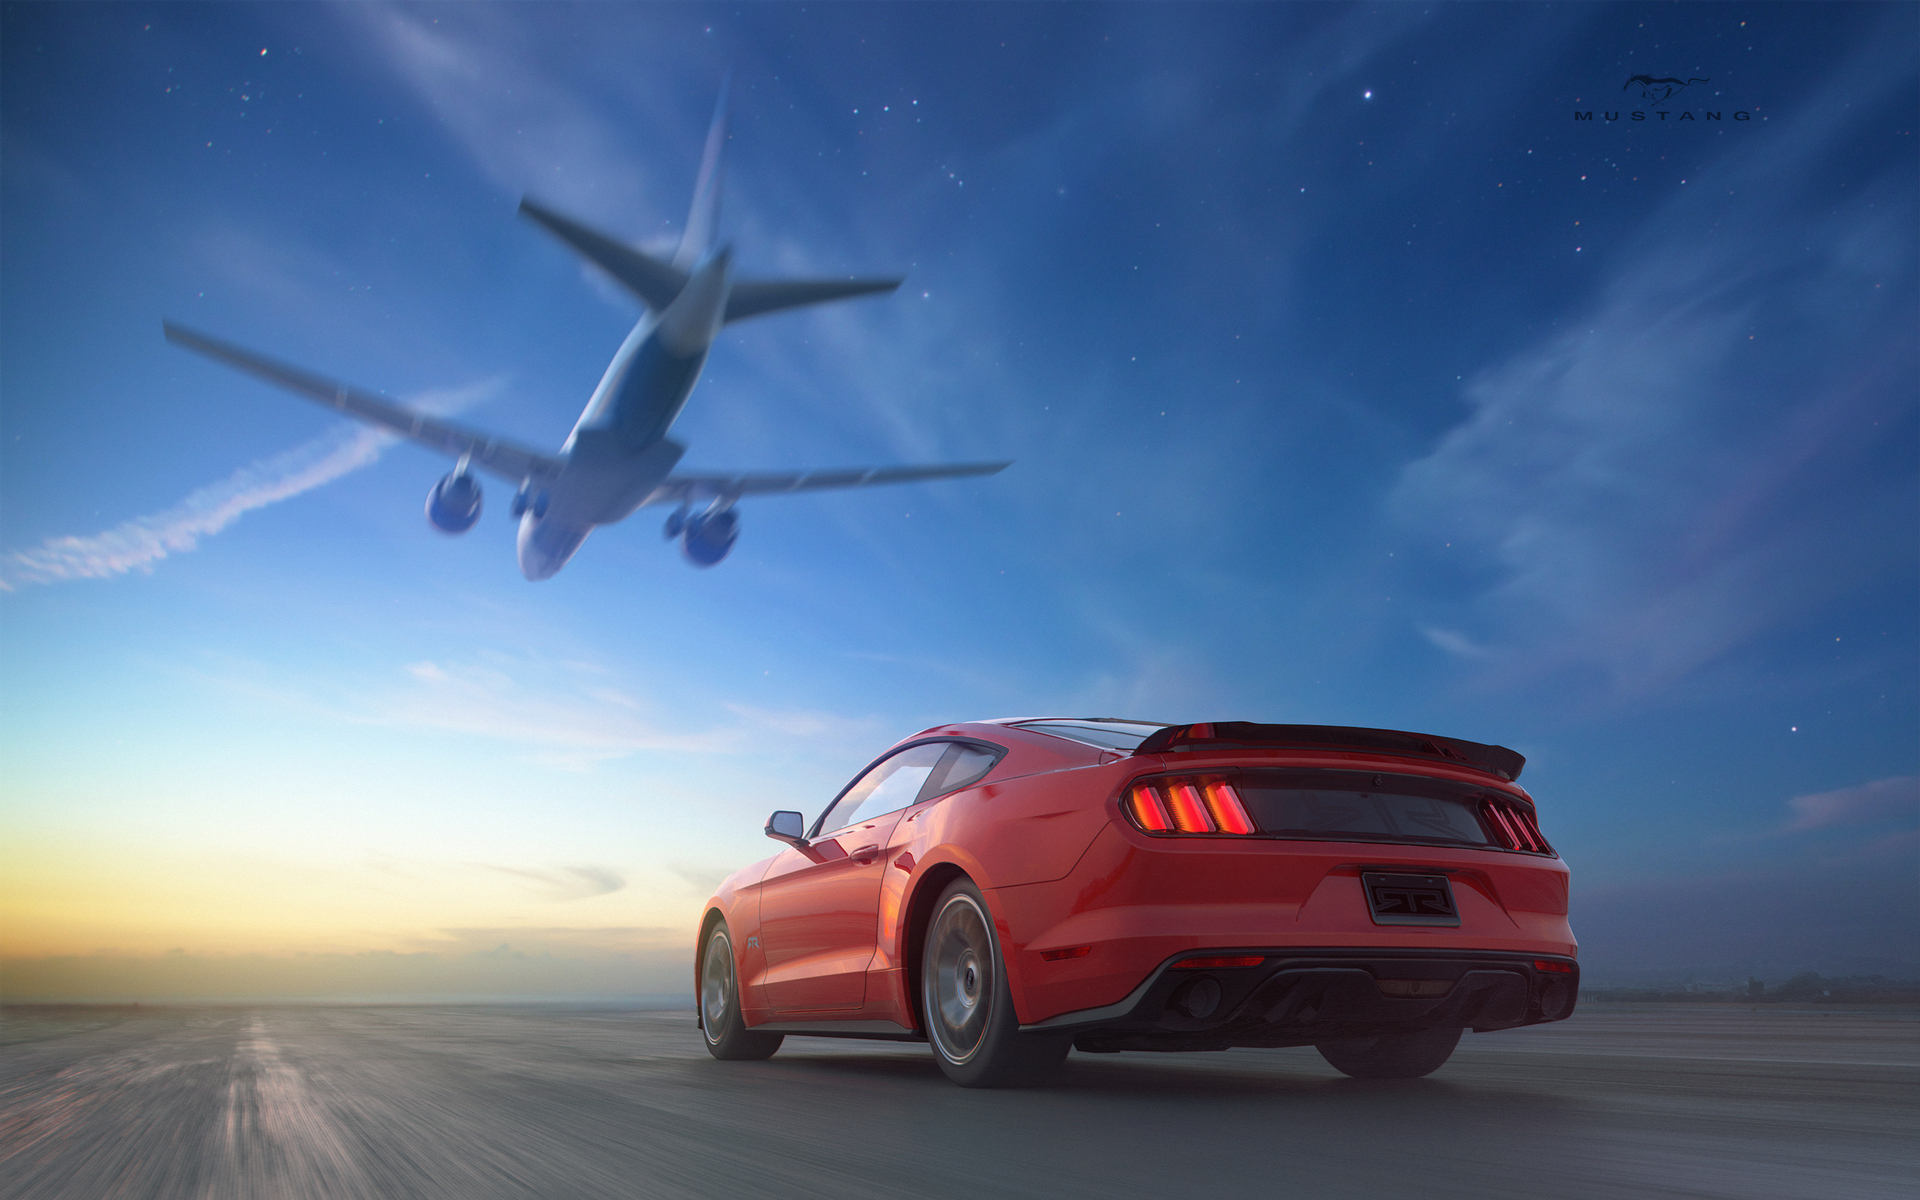 ford-mustang-airplane-z6.jpg